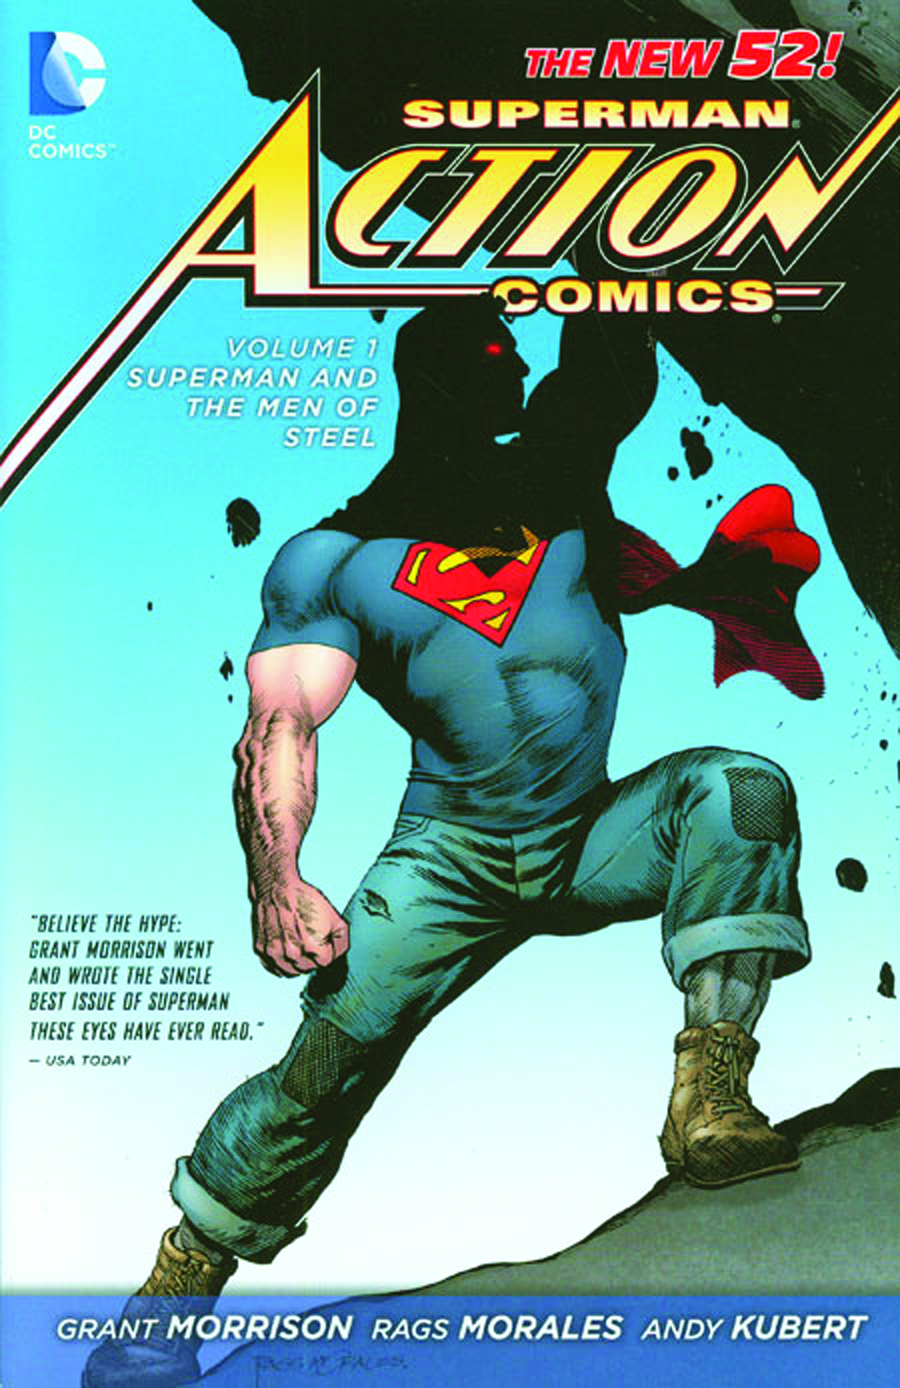 SUPERMAN ACTION COMICS HC VOL 01 SUPERMAN MEN OF STEEL